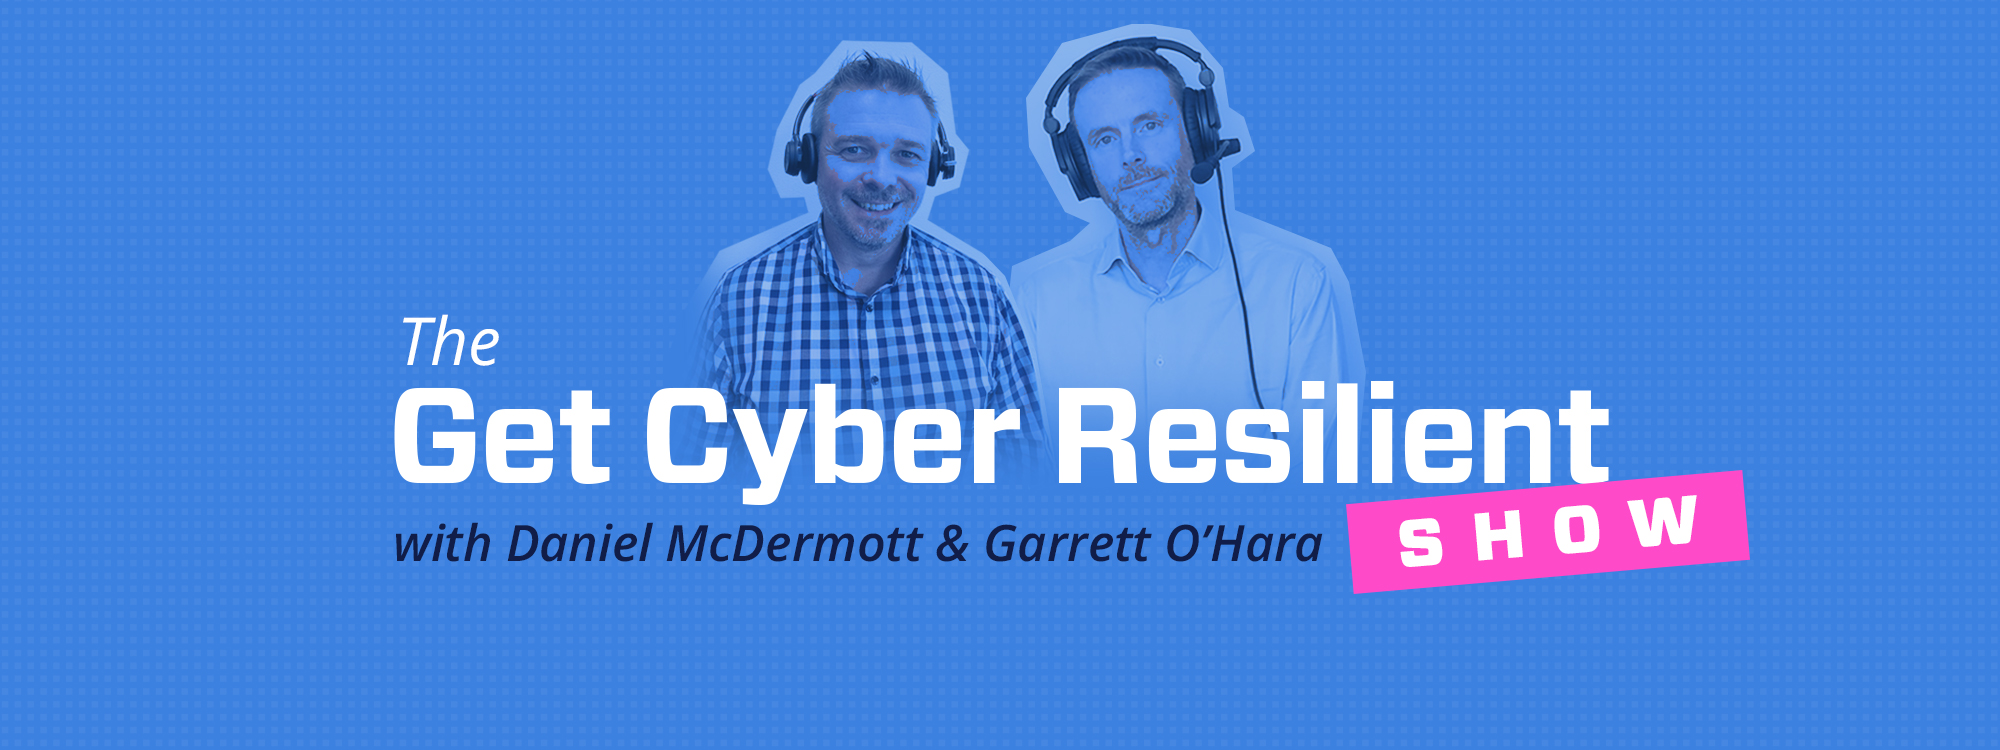 Cybersecurity leadership in a leading cybersecurity company with Mark O'Hare - Mimecast CISO